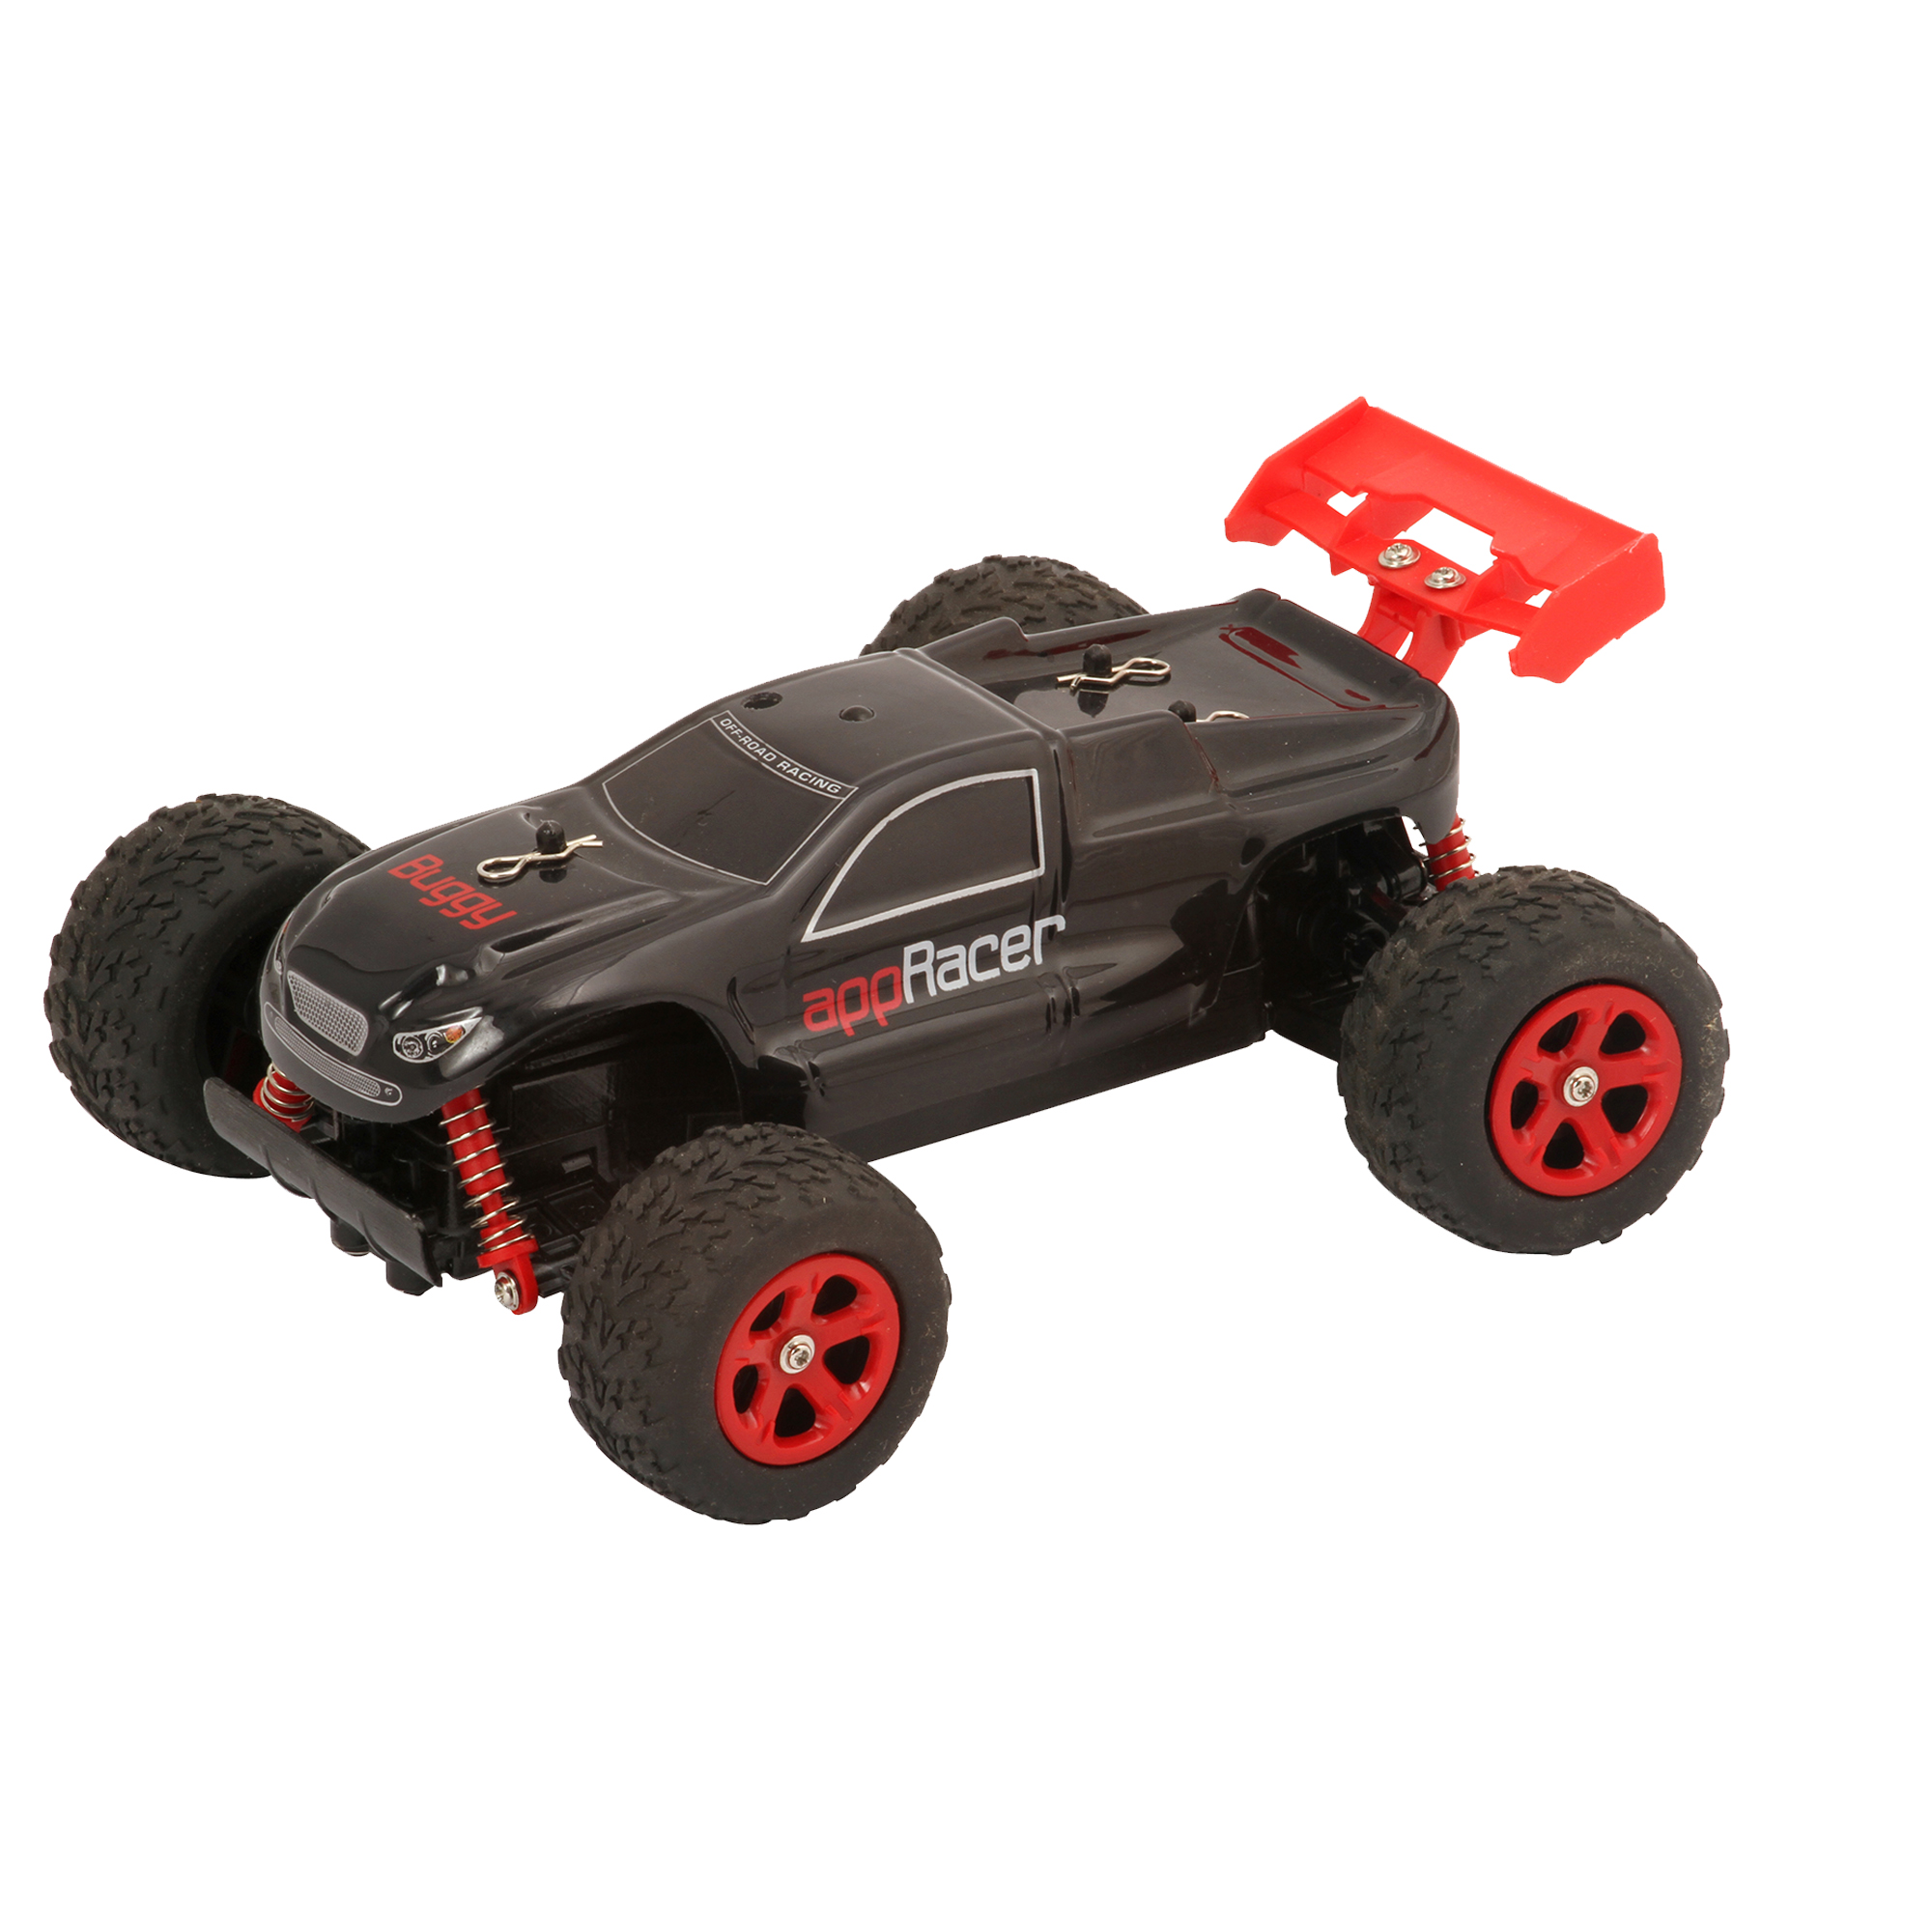 Image of Appracer Remote Control Buggy